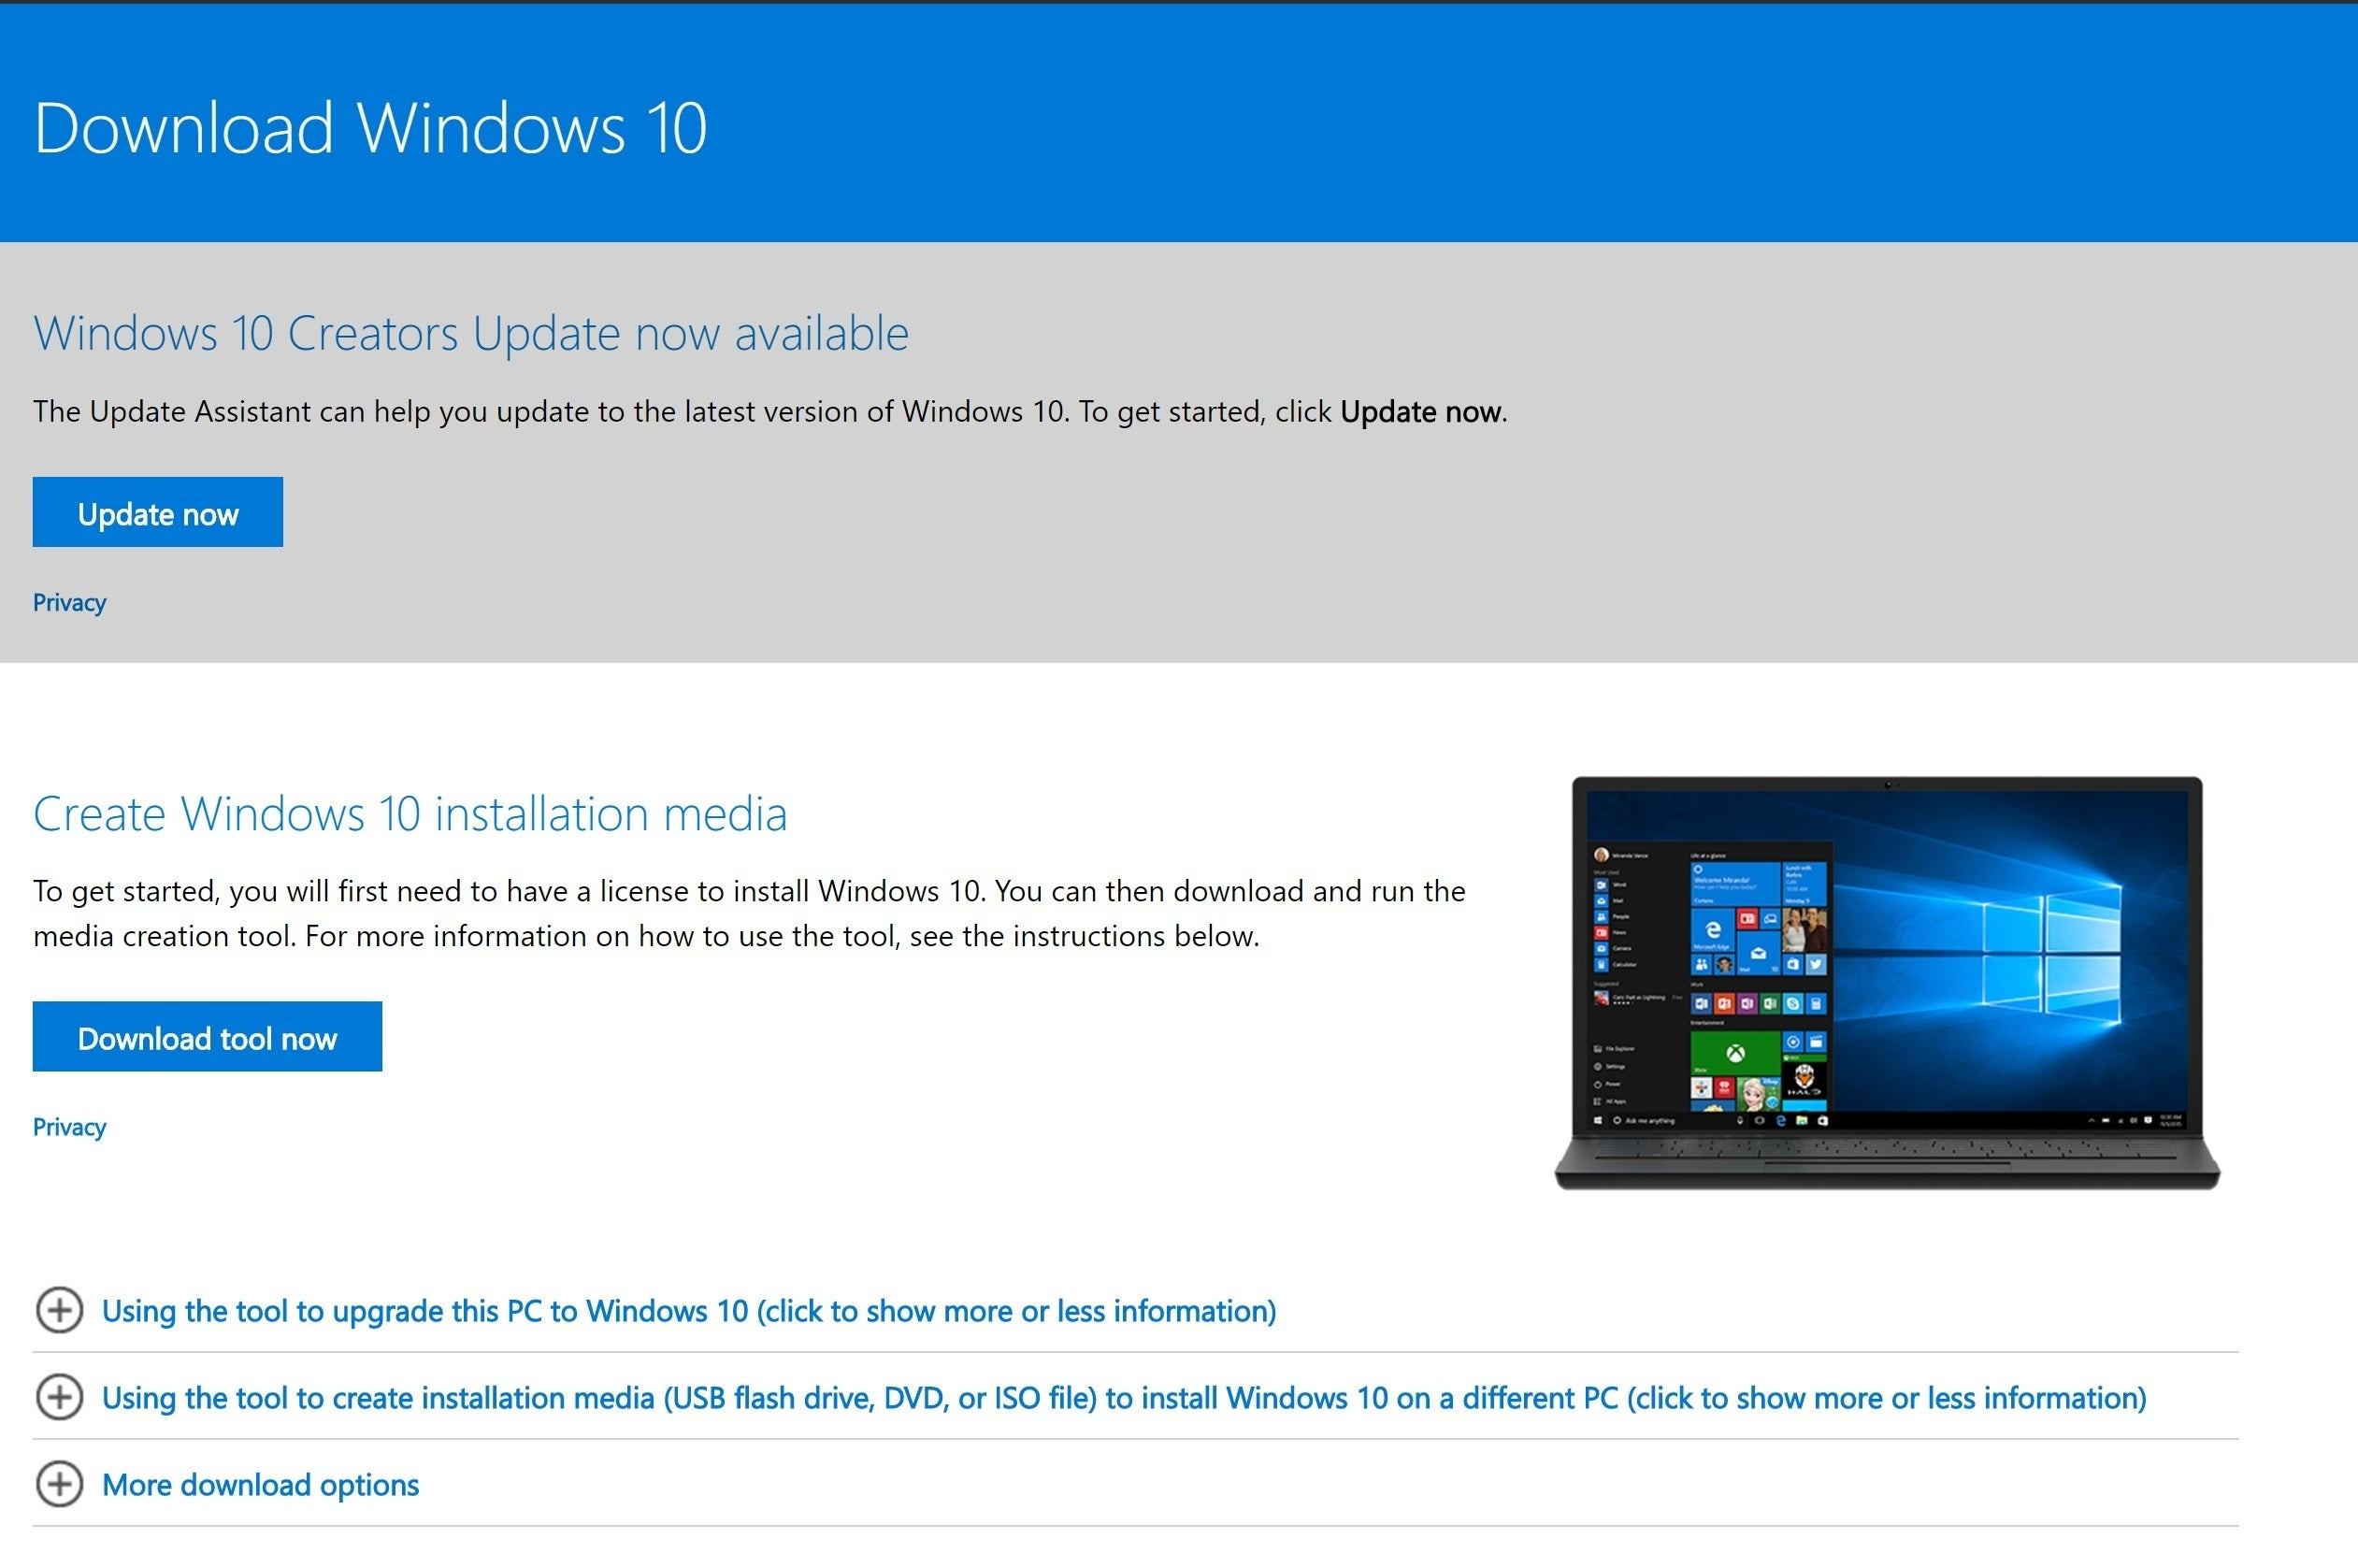 How to download a windows 10 iso file pcworld for Microsoft windows